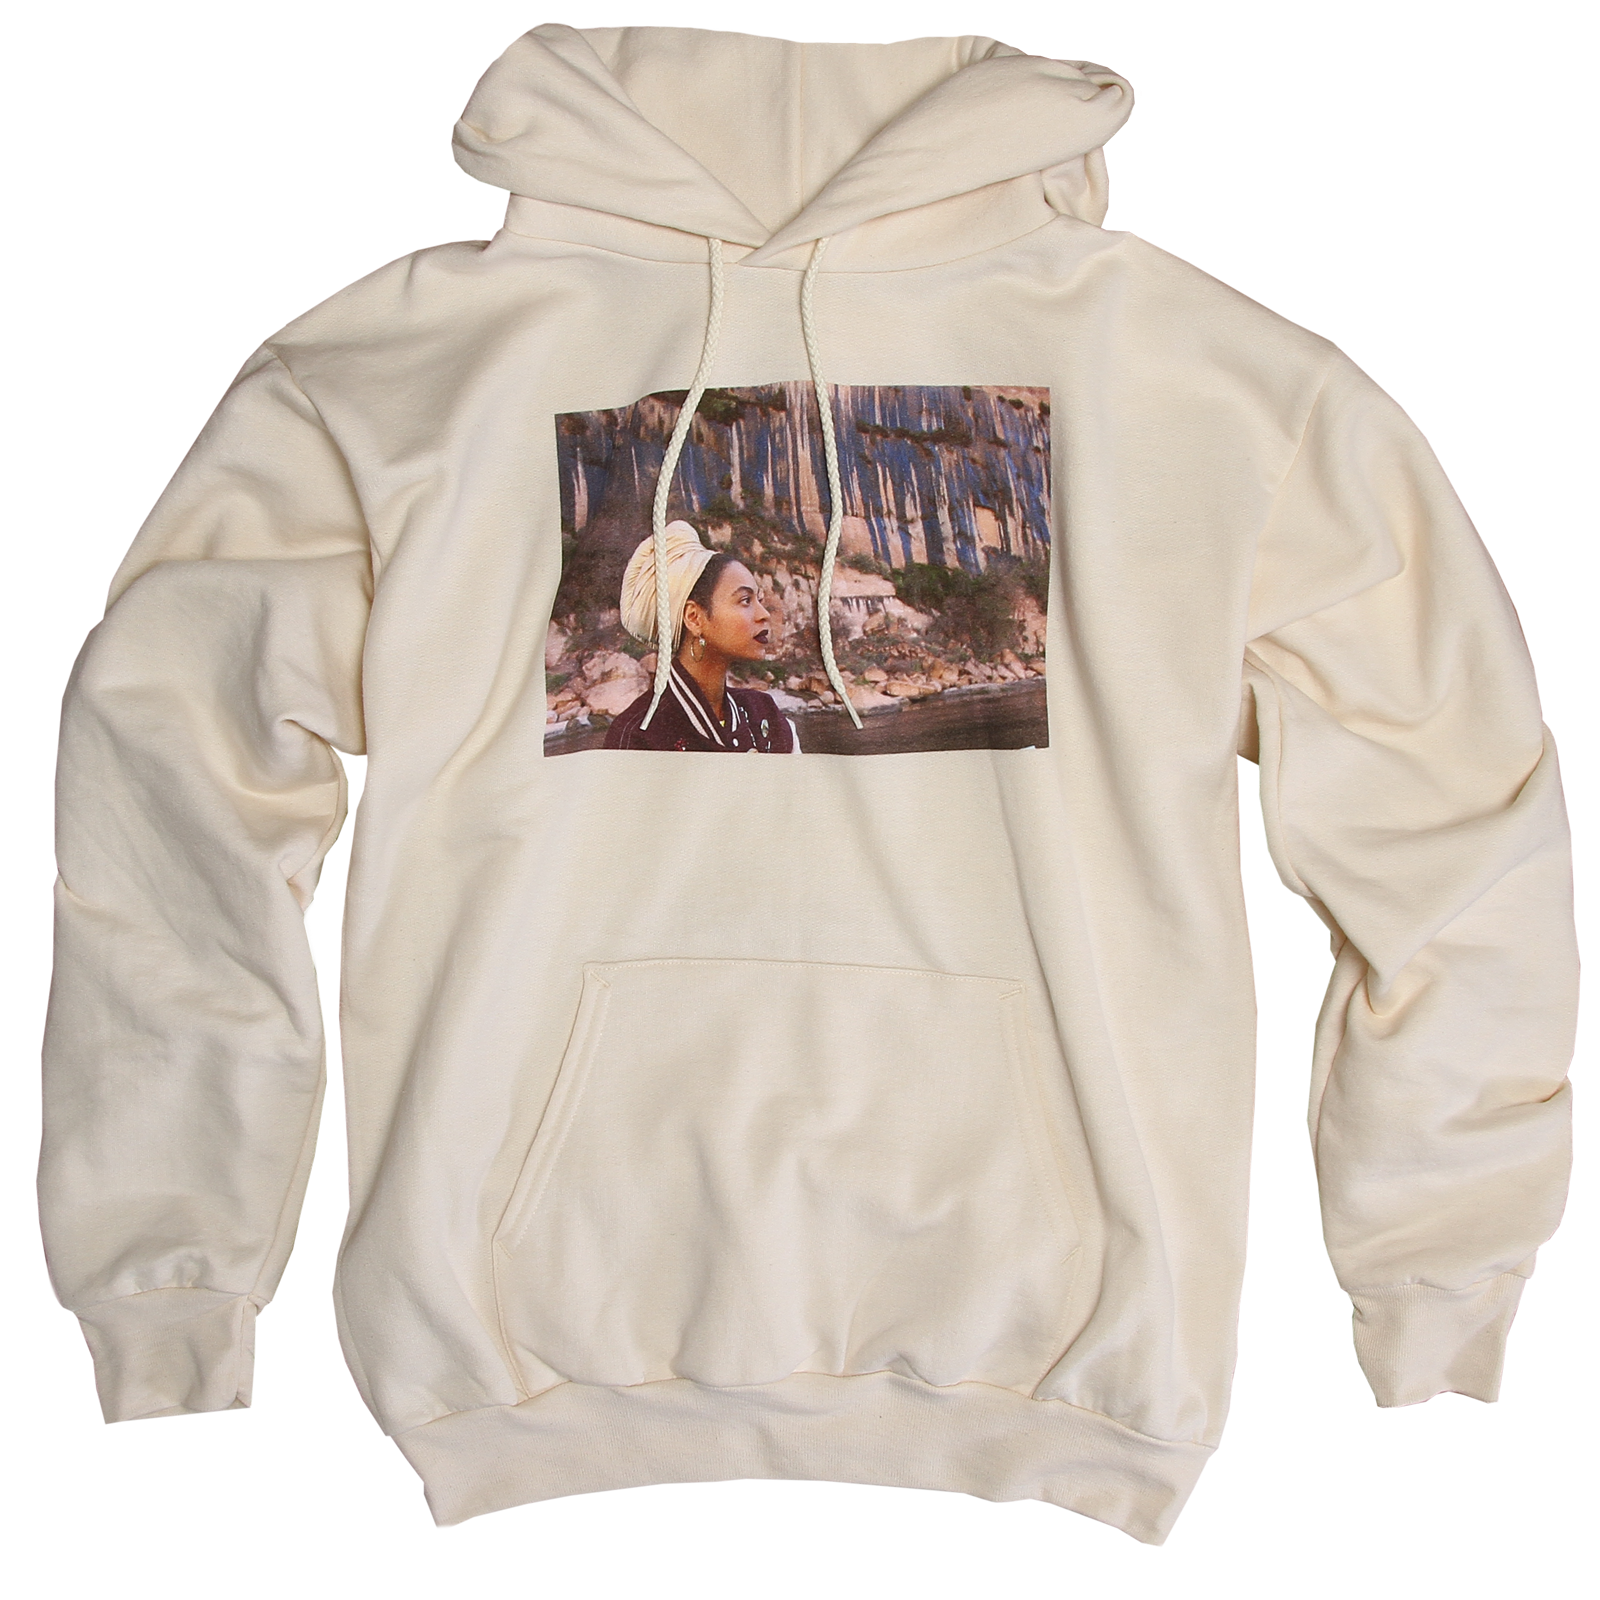 Beyonce Pullover $60